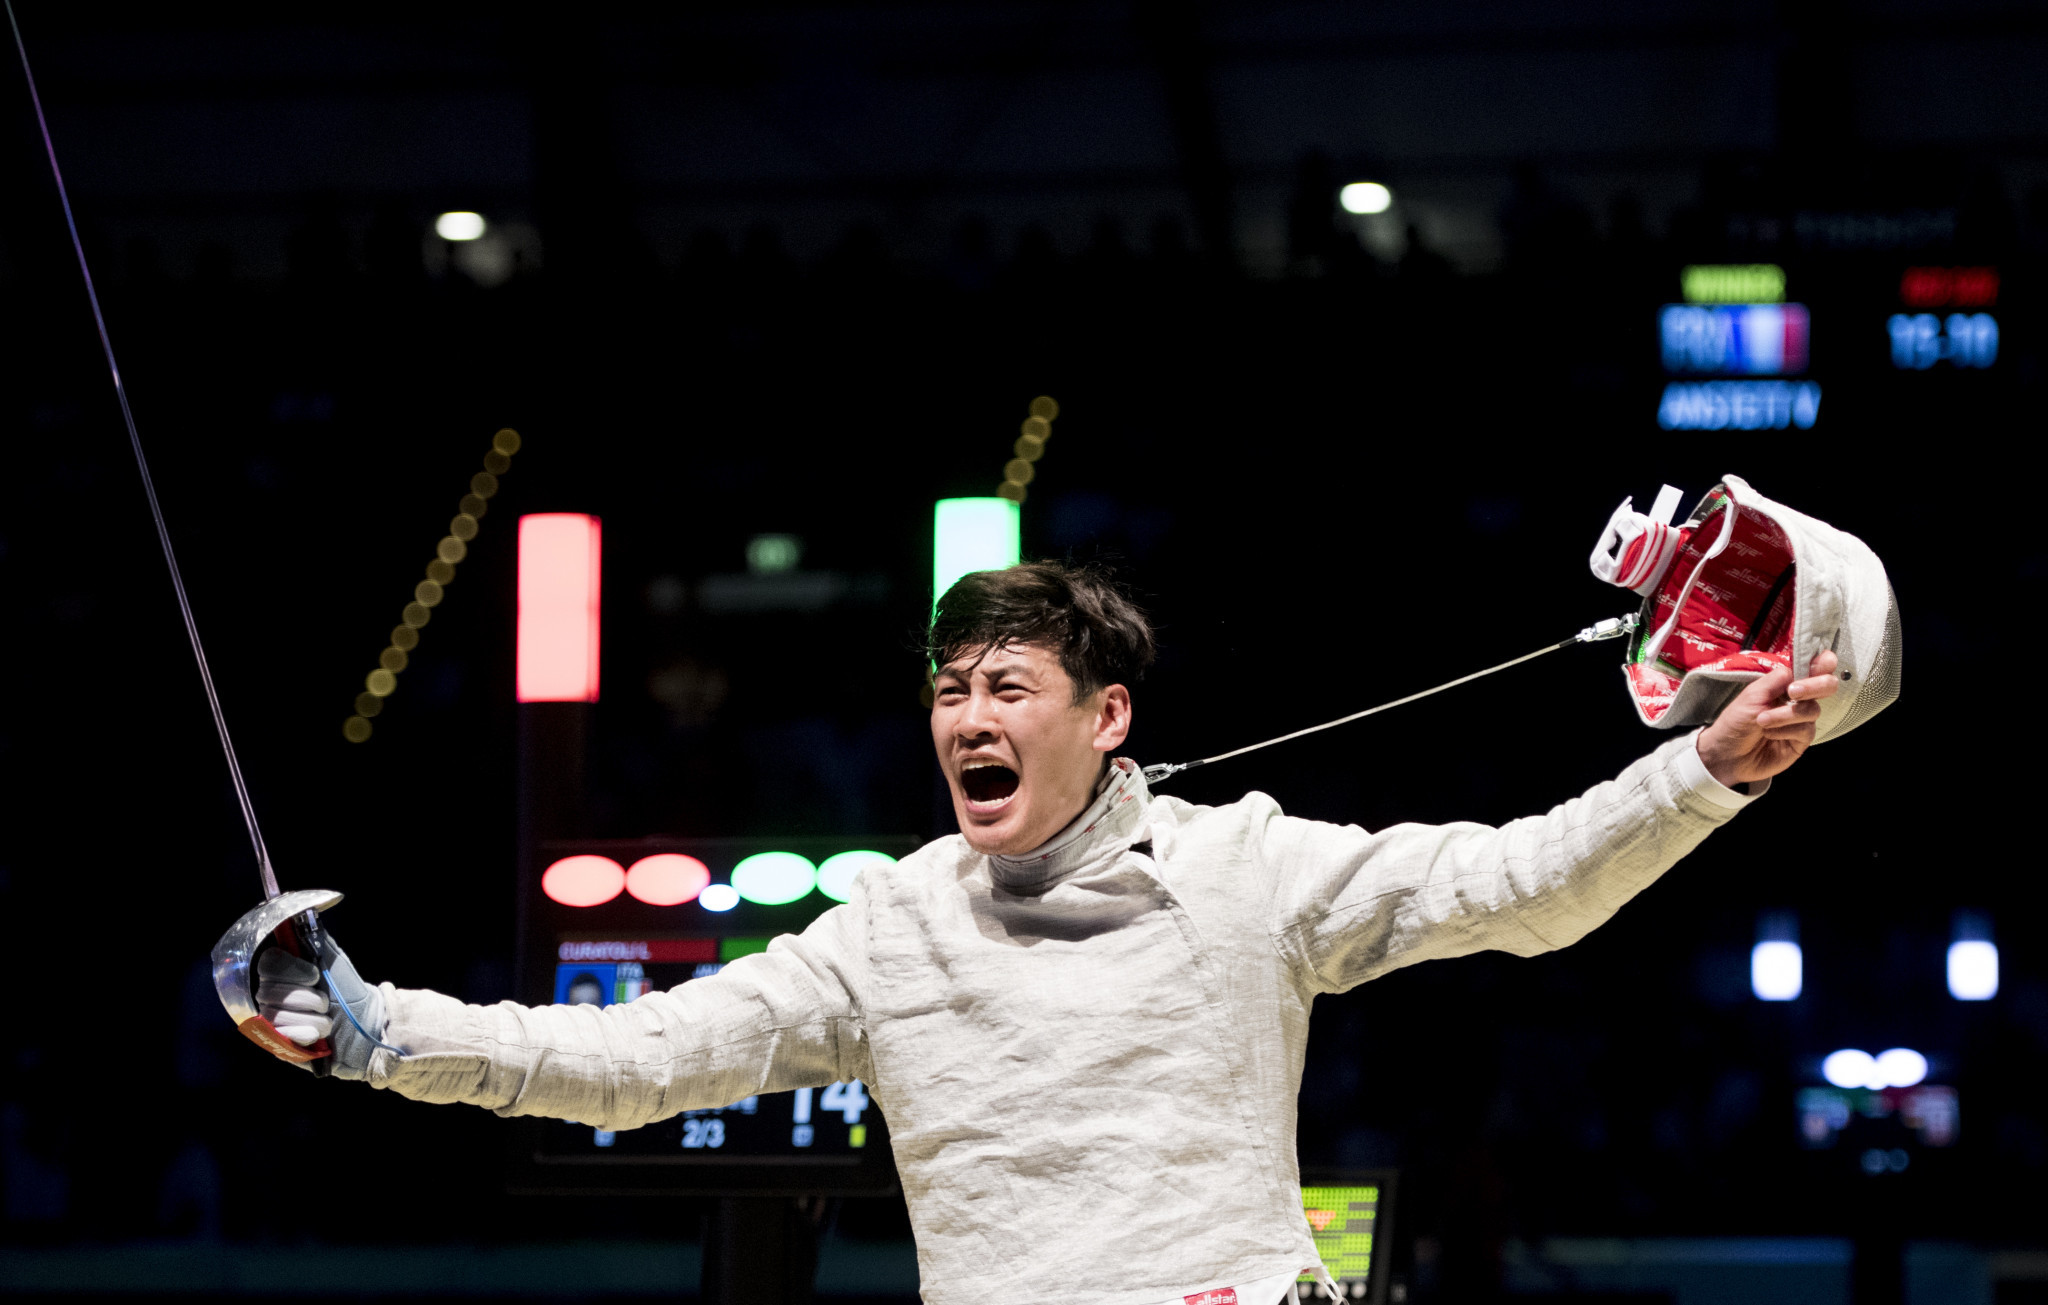 Top two to compete at FIE Men's Sabre World Cup in Algeria